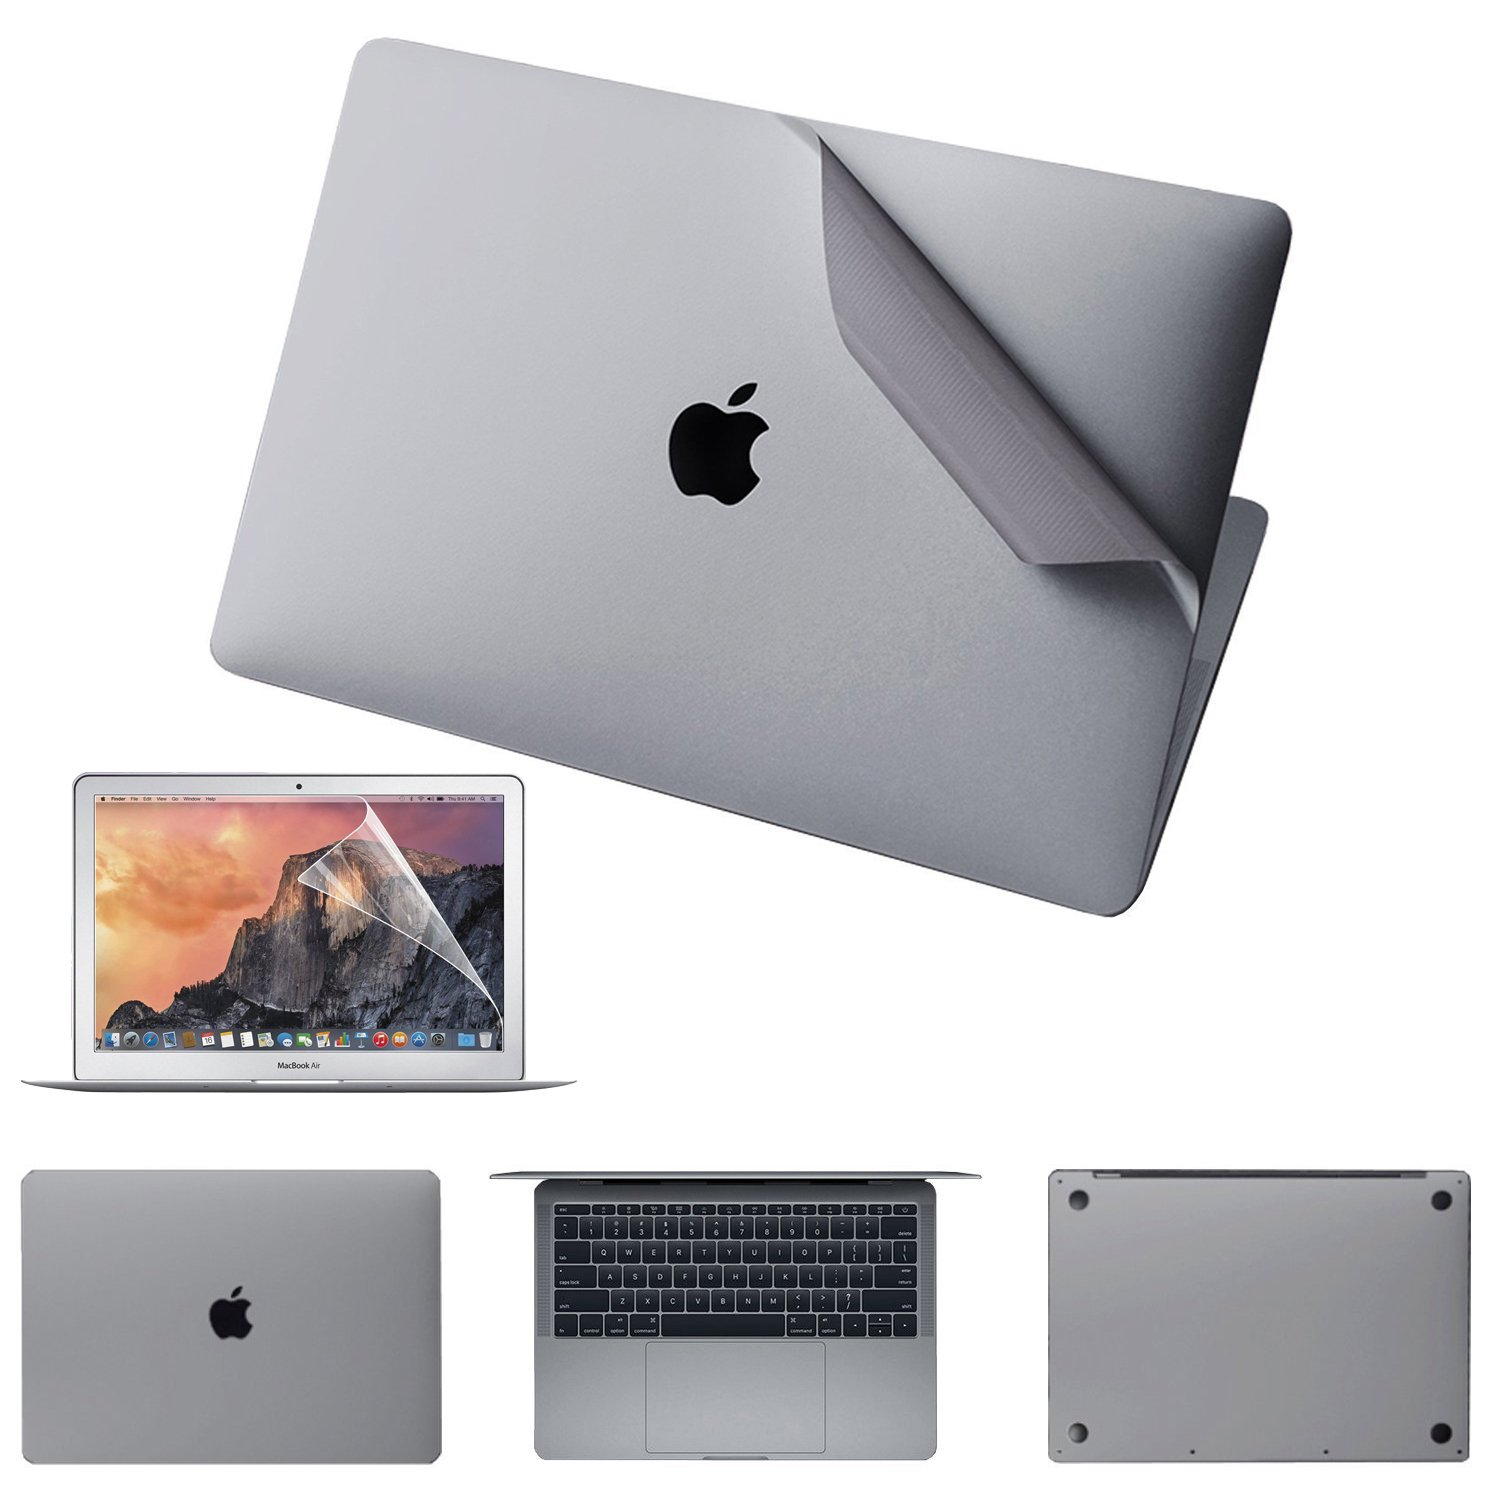 JRCMAX 5-in-1 Skin Sticker for MacBook Pro 13 Inch with Touch Bar (A2159/A1706/A1989), 3M Decal Skin with High Clear Screen Protector -Gray